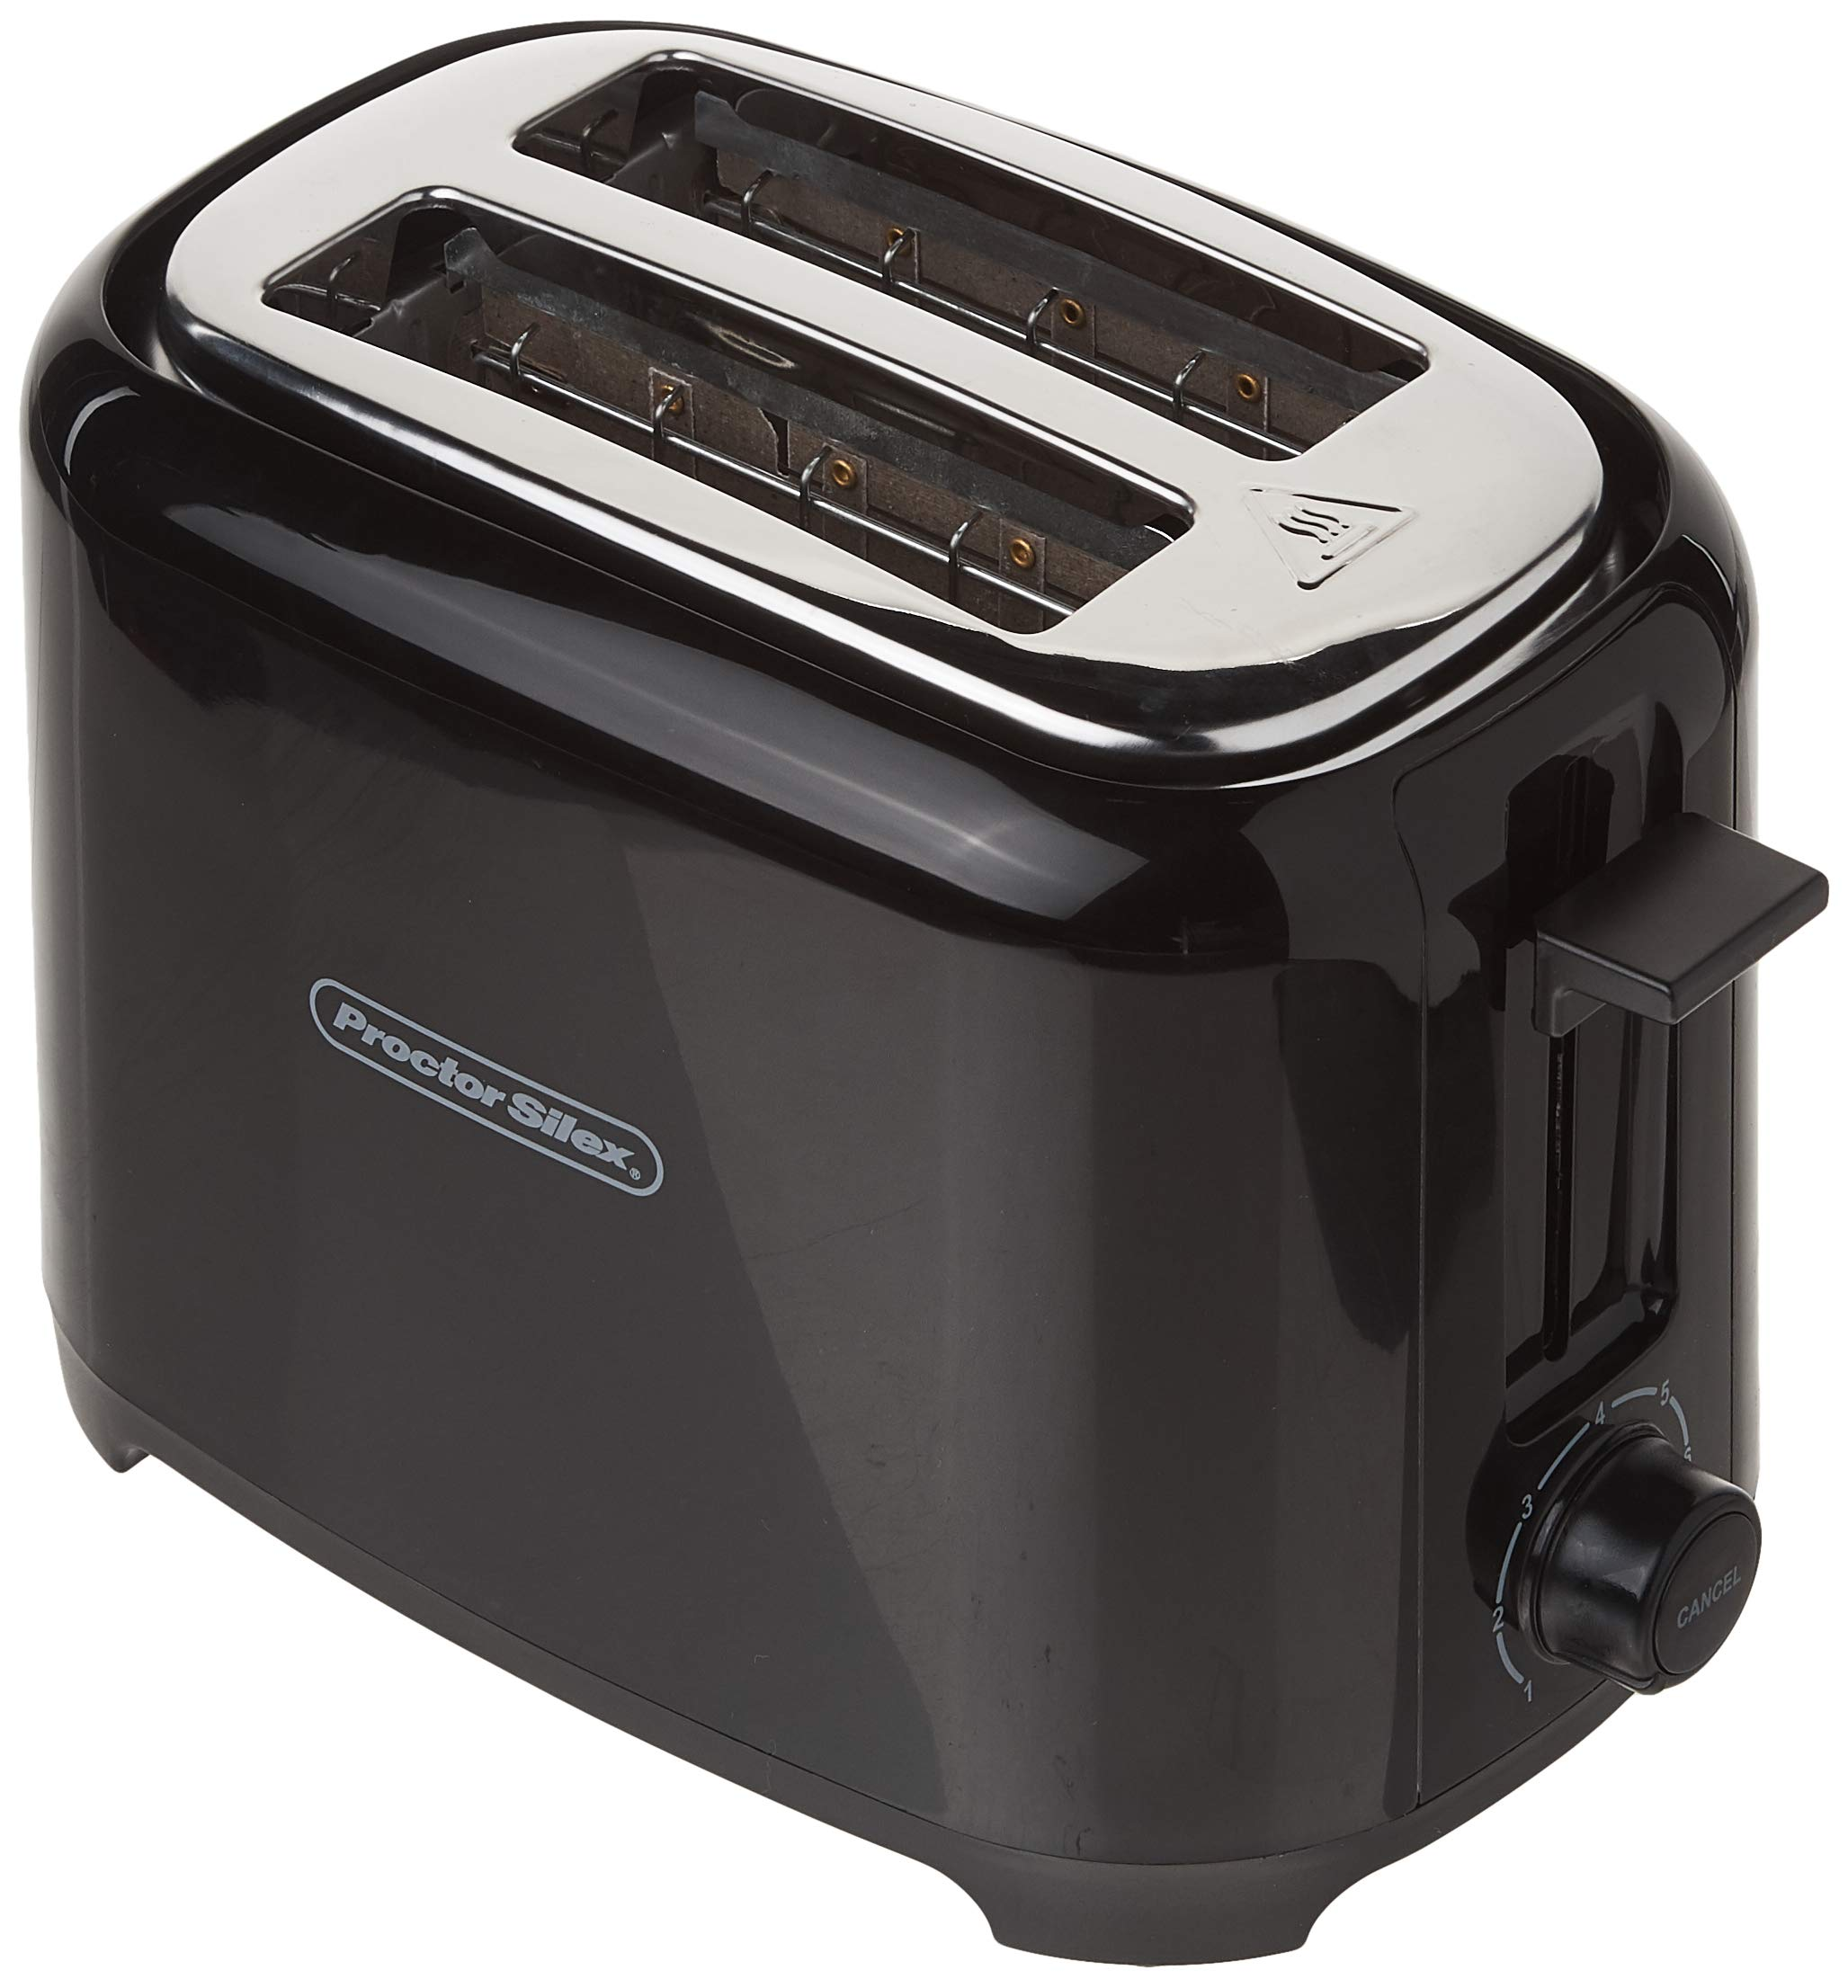 Proctor Silex 2-Slice Extra-Wide Slot Toaster With Cool Wall, Shade Selector, Toast Boost, Auto Shut-Off And Cancel Button, Black (22215) by Proctor Silex